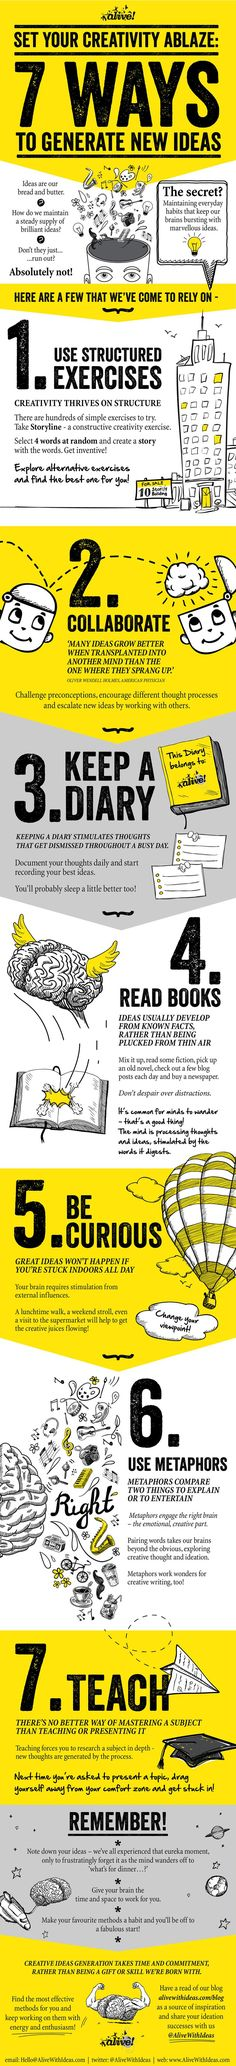 """Set Your Creativity Ablaze: 7 Ways to Generate New Ideas <a class=""""pintag"""" href=""""/explore/infographic/"""" title=""""#infographic explore Pinterest"""">#infographic</a>"""